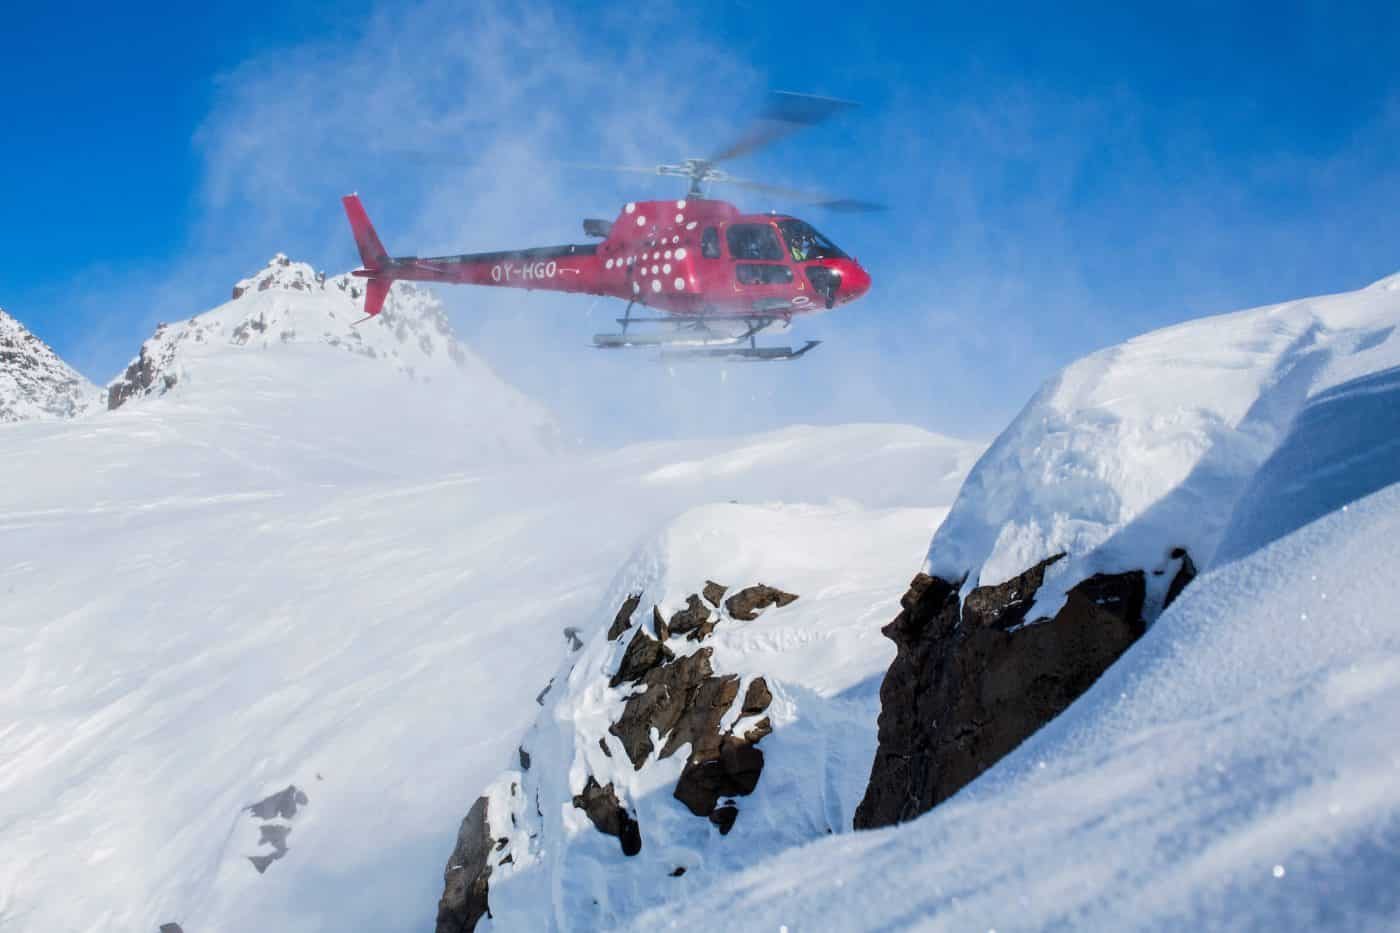 Air Greenland Helicopter hovering for skiers. By Jeremy Bernard